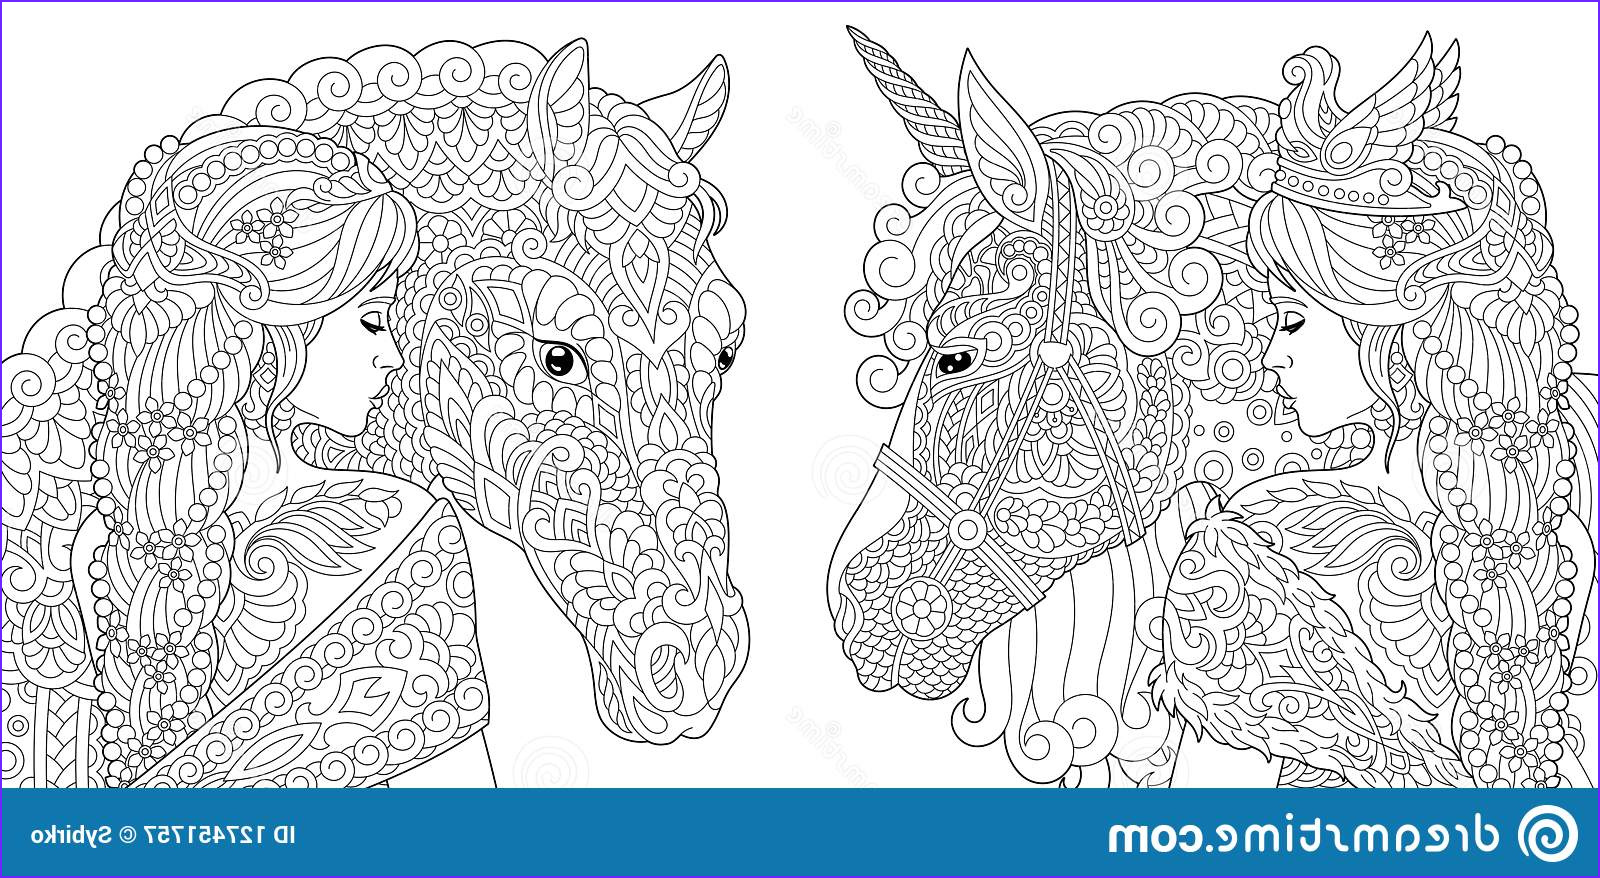 fantasy coloring pages book adults colouring pictures girl unicorn horse drawn zentangle style vector illustration image